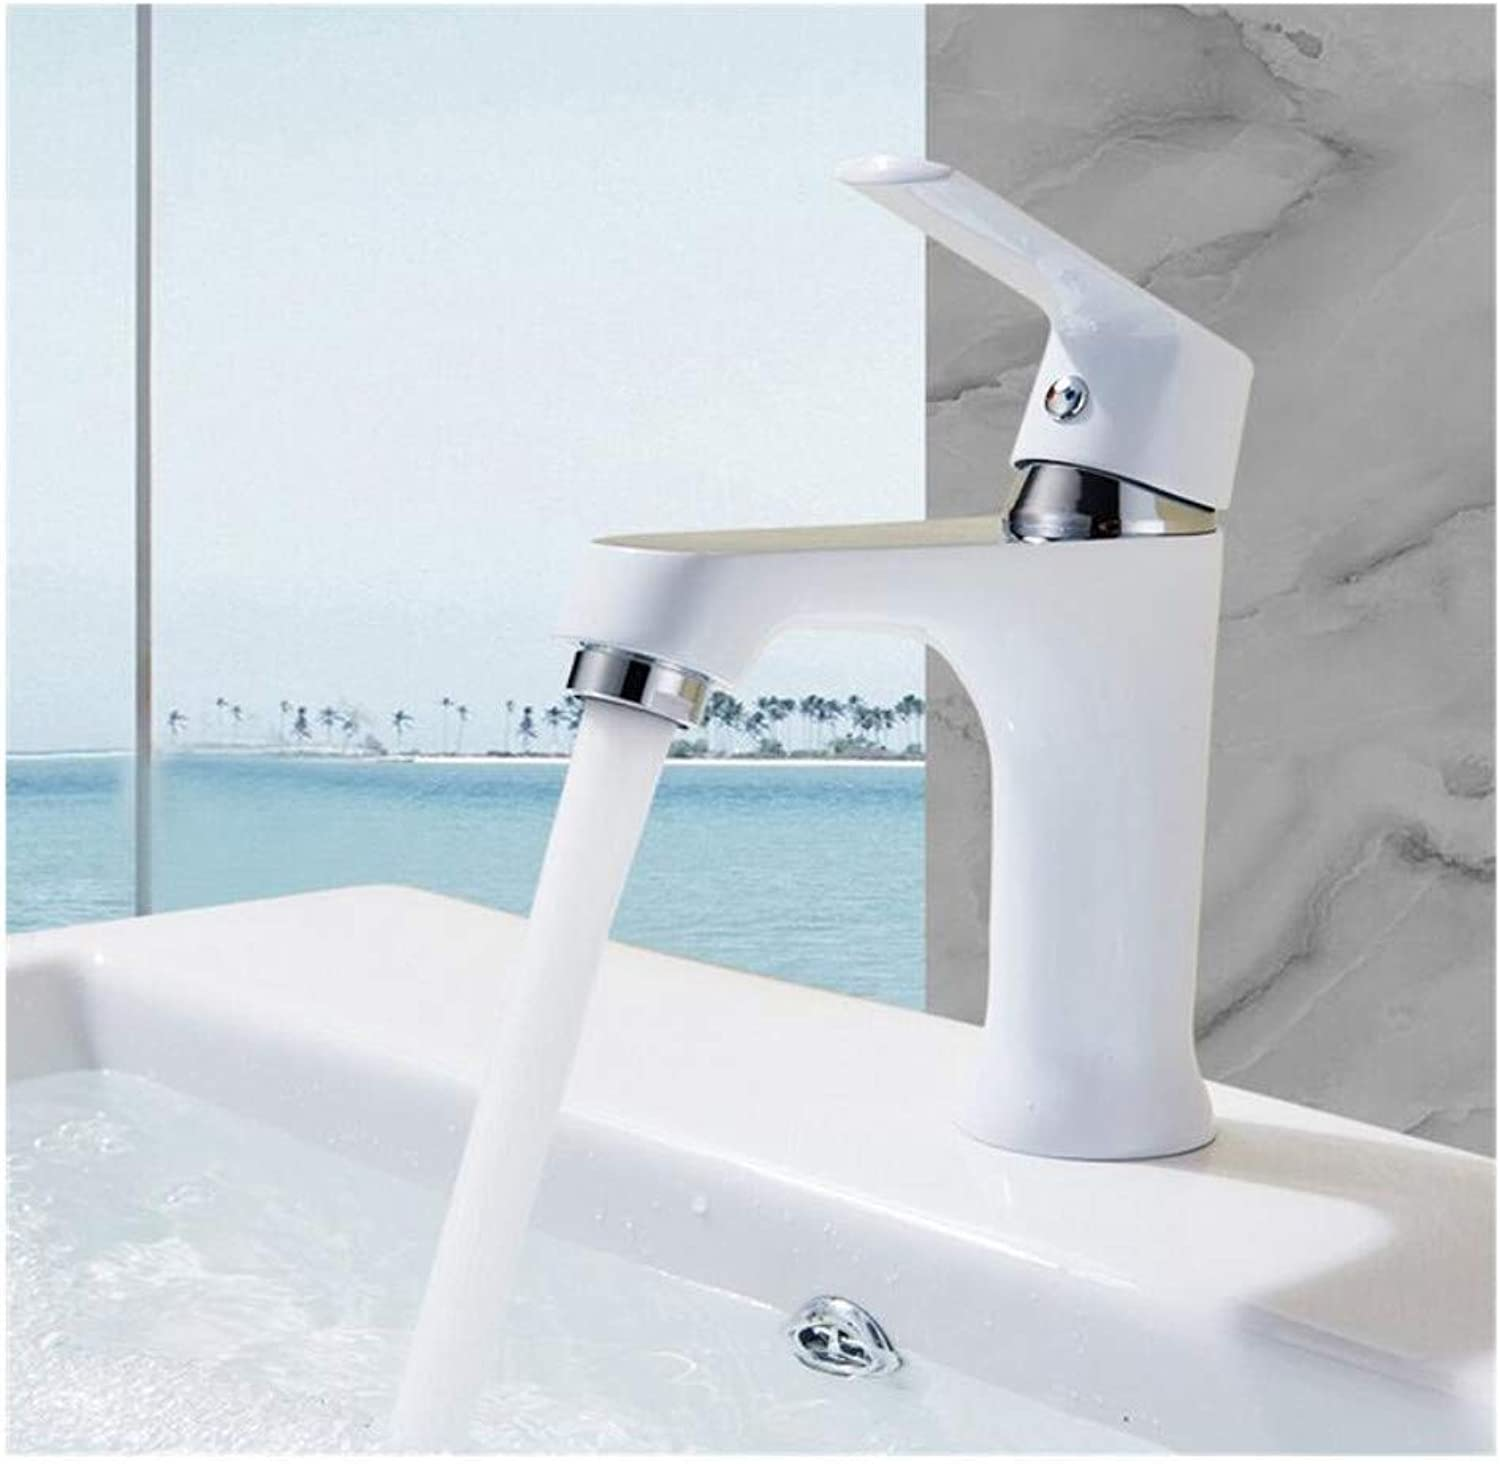 Modern Double Basin Sink Hot and Cold Water Faucetfashion Style Home Multi-color Bath Basin Brass Faucet Cold and Hot